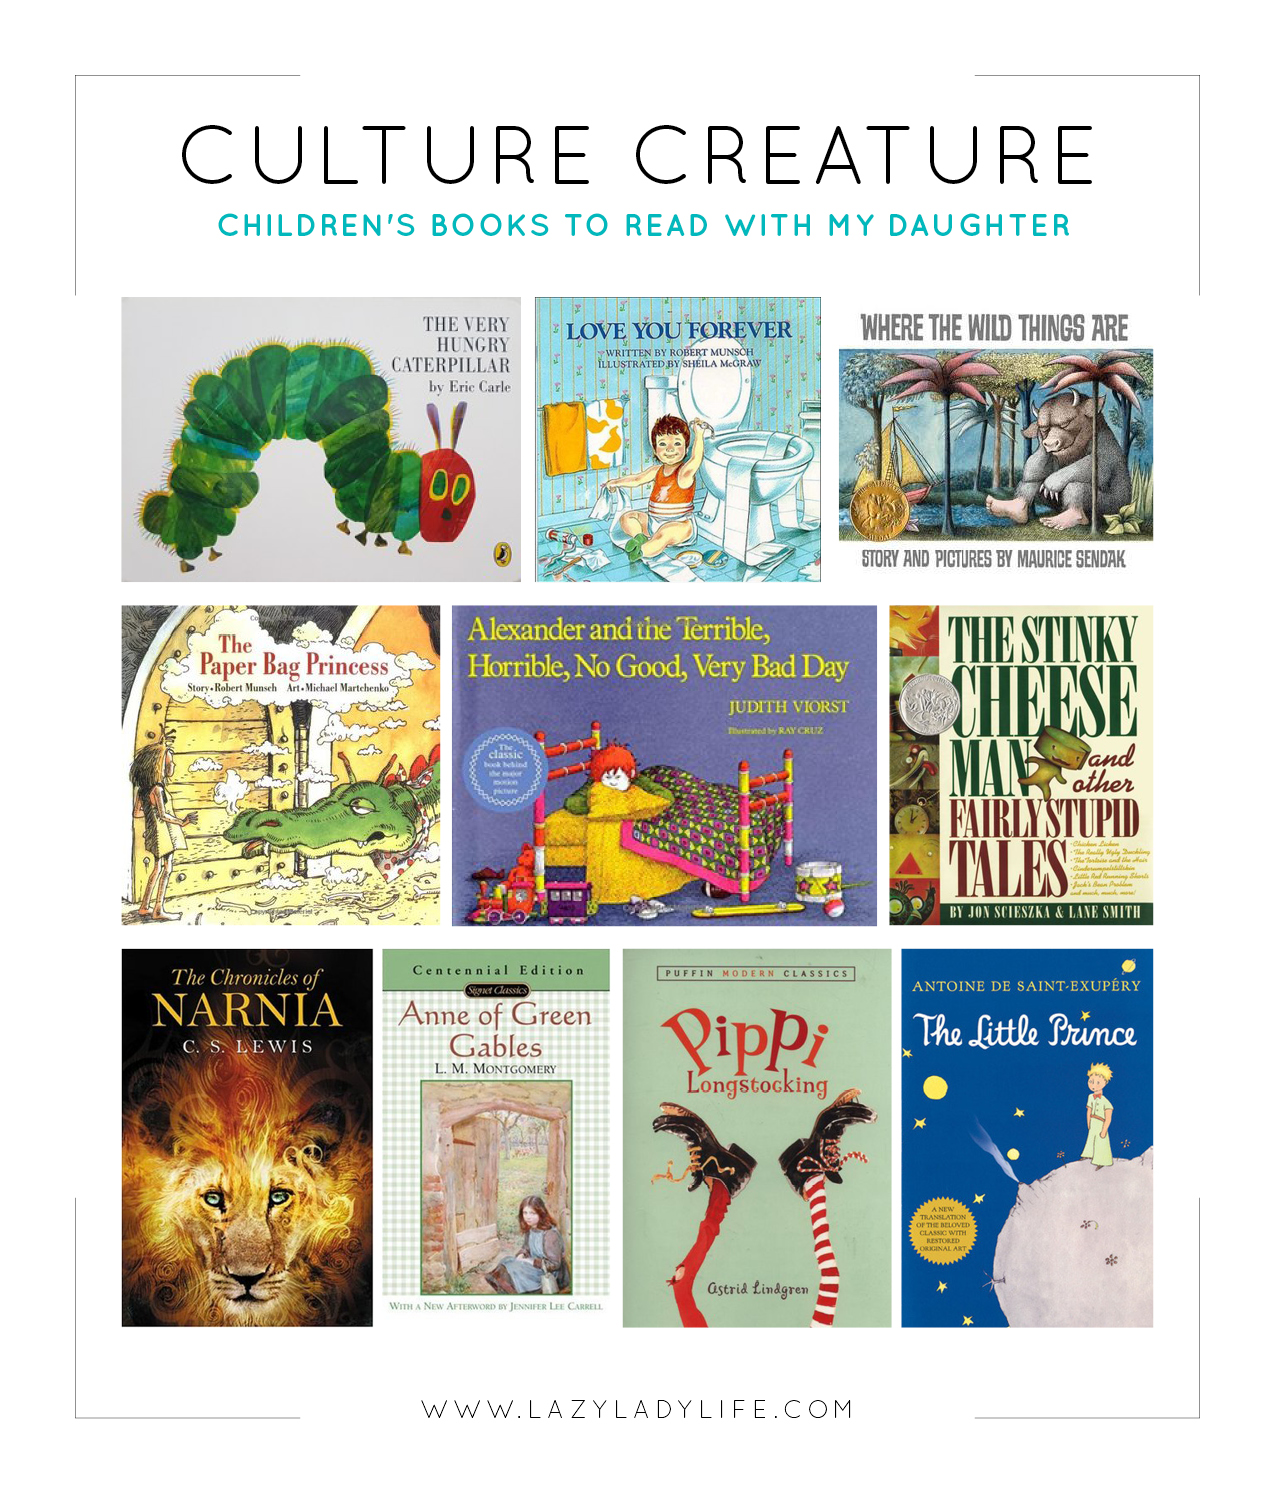 Culture-Creature-Childrens-Books.jpg